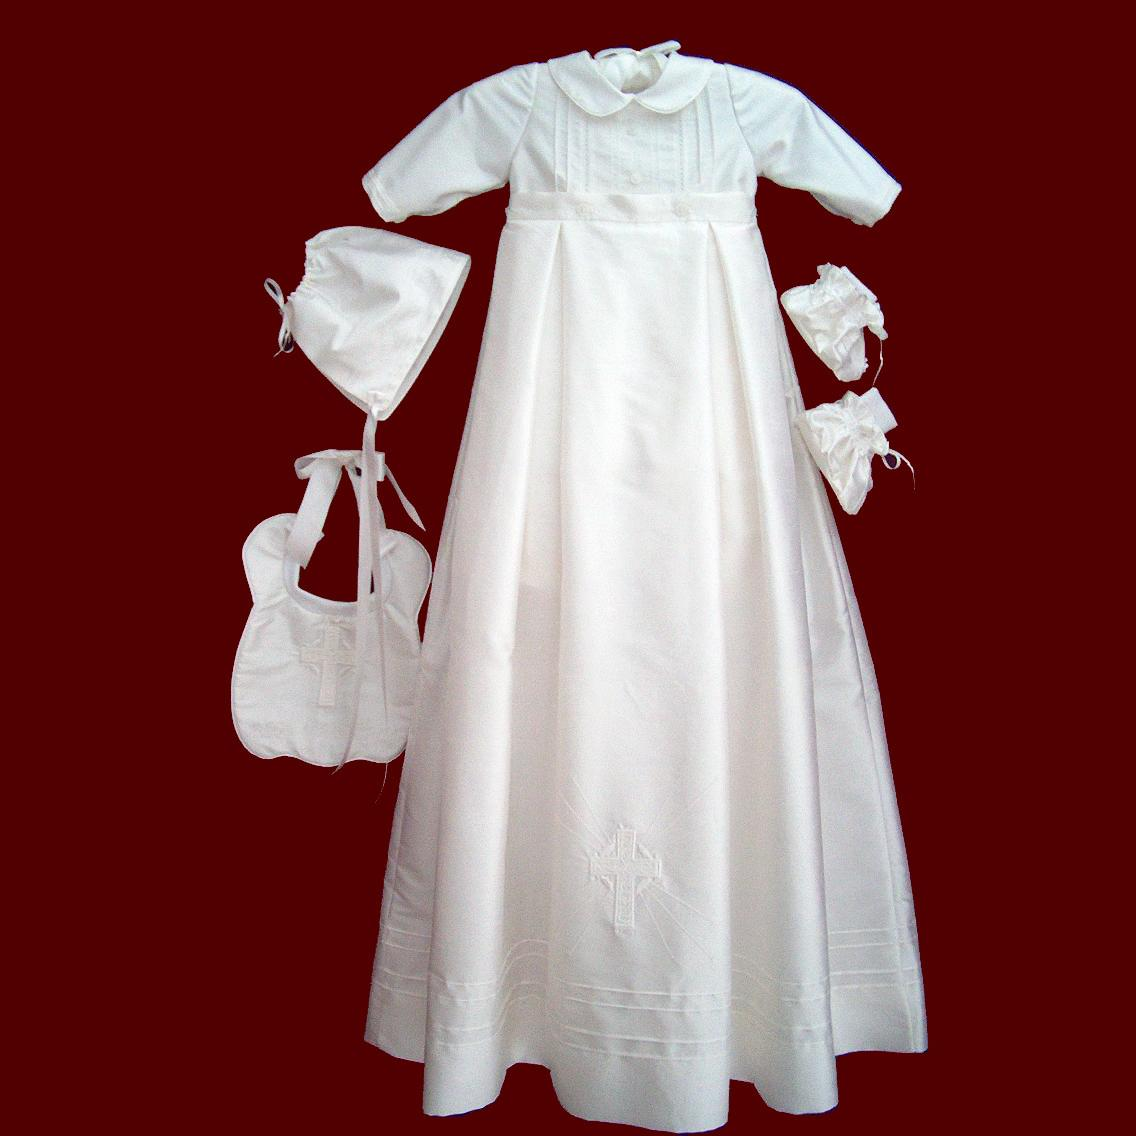 Silk Dupione Boys Christening Romper With Detachable Celtic Gown & Accessories